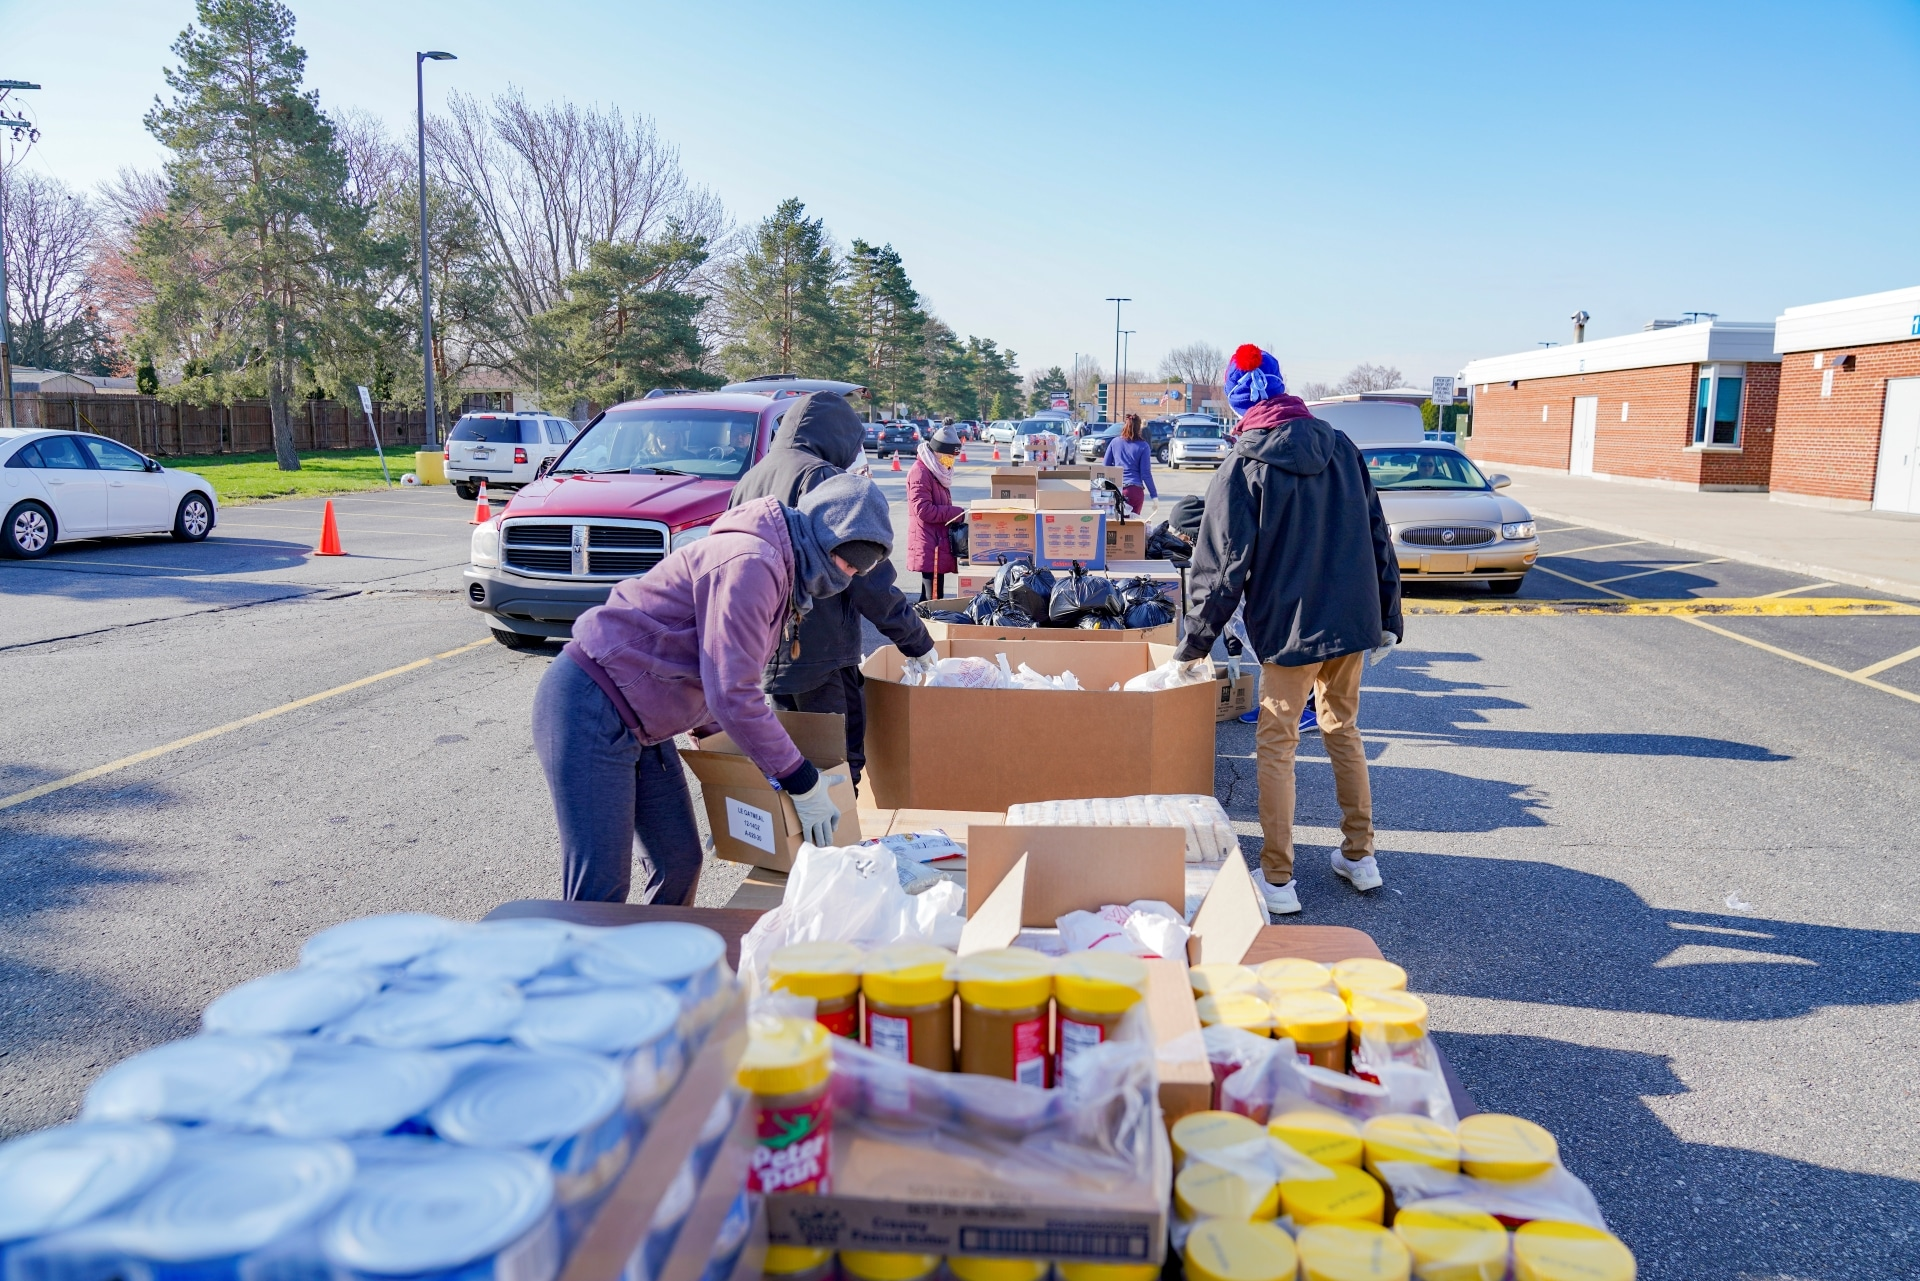 Gleaners staff distributes food at Carter Middle School in Warren, Michigan.